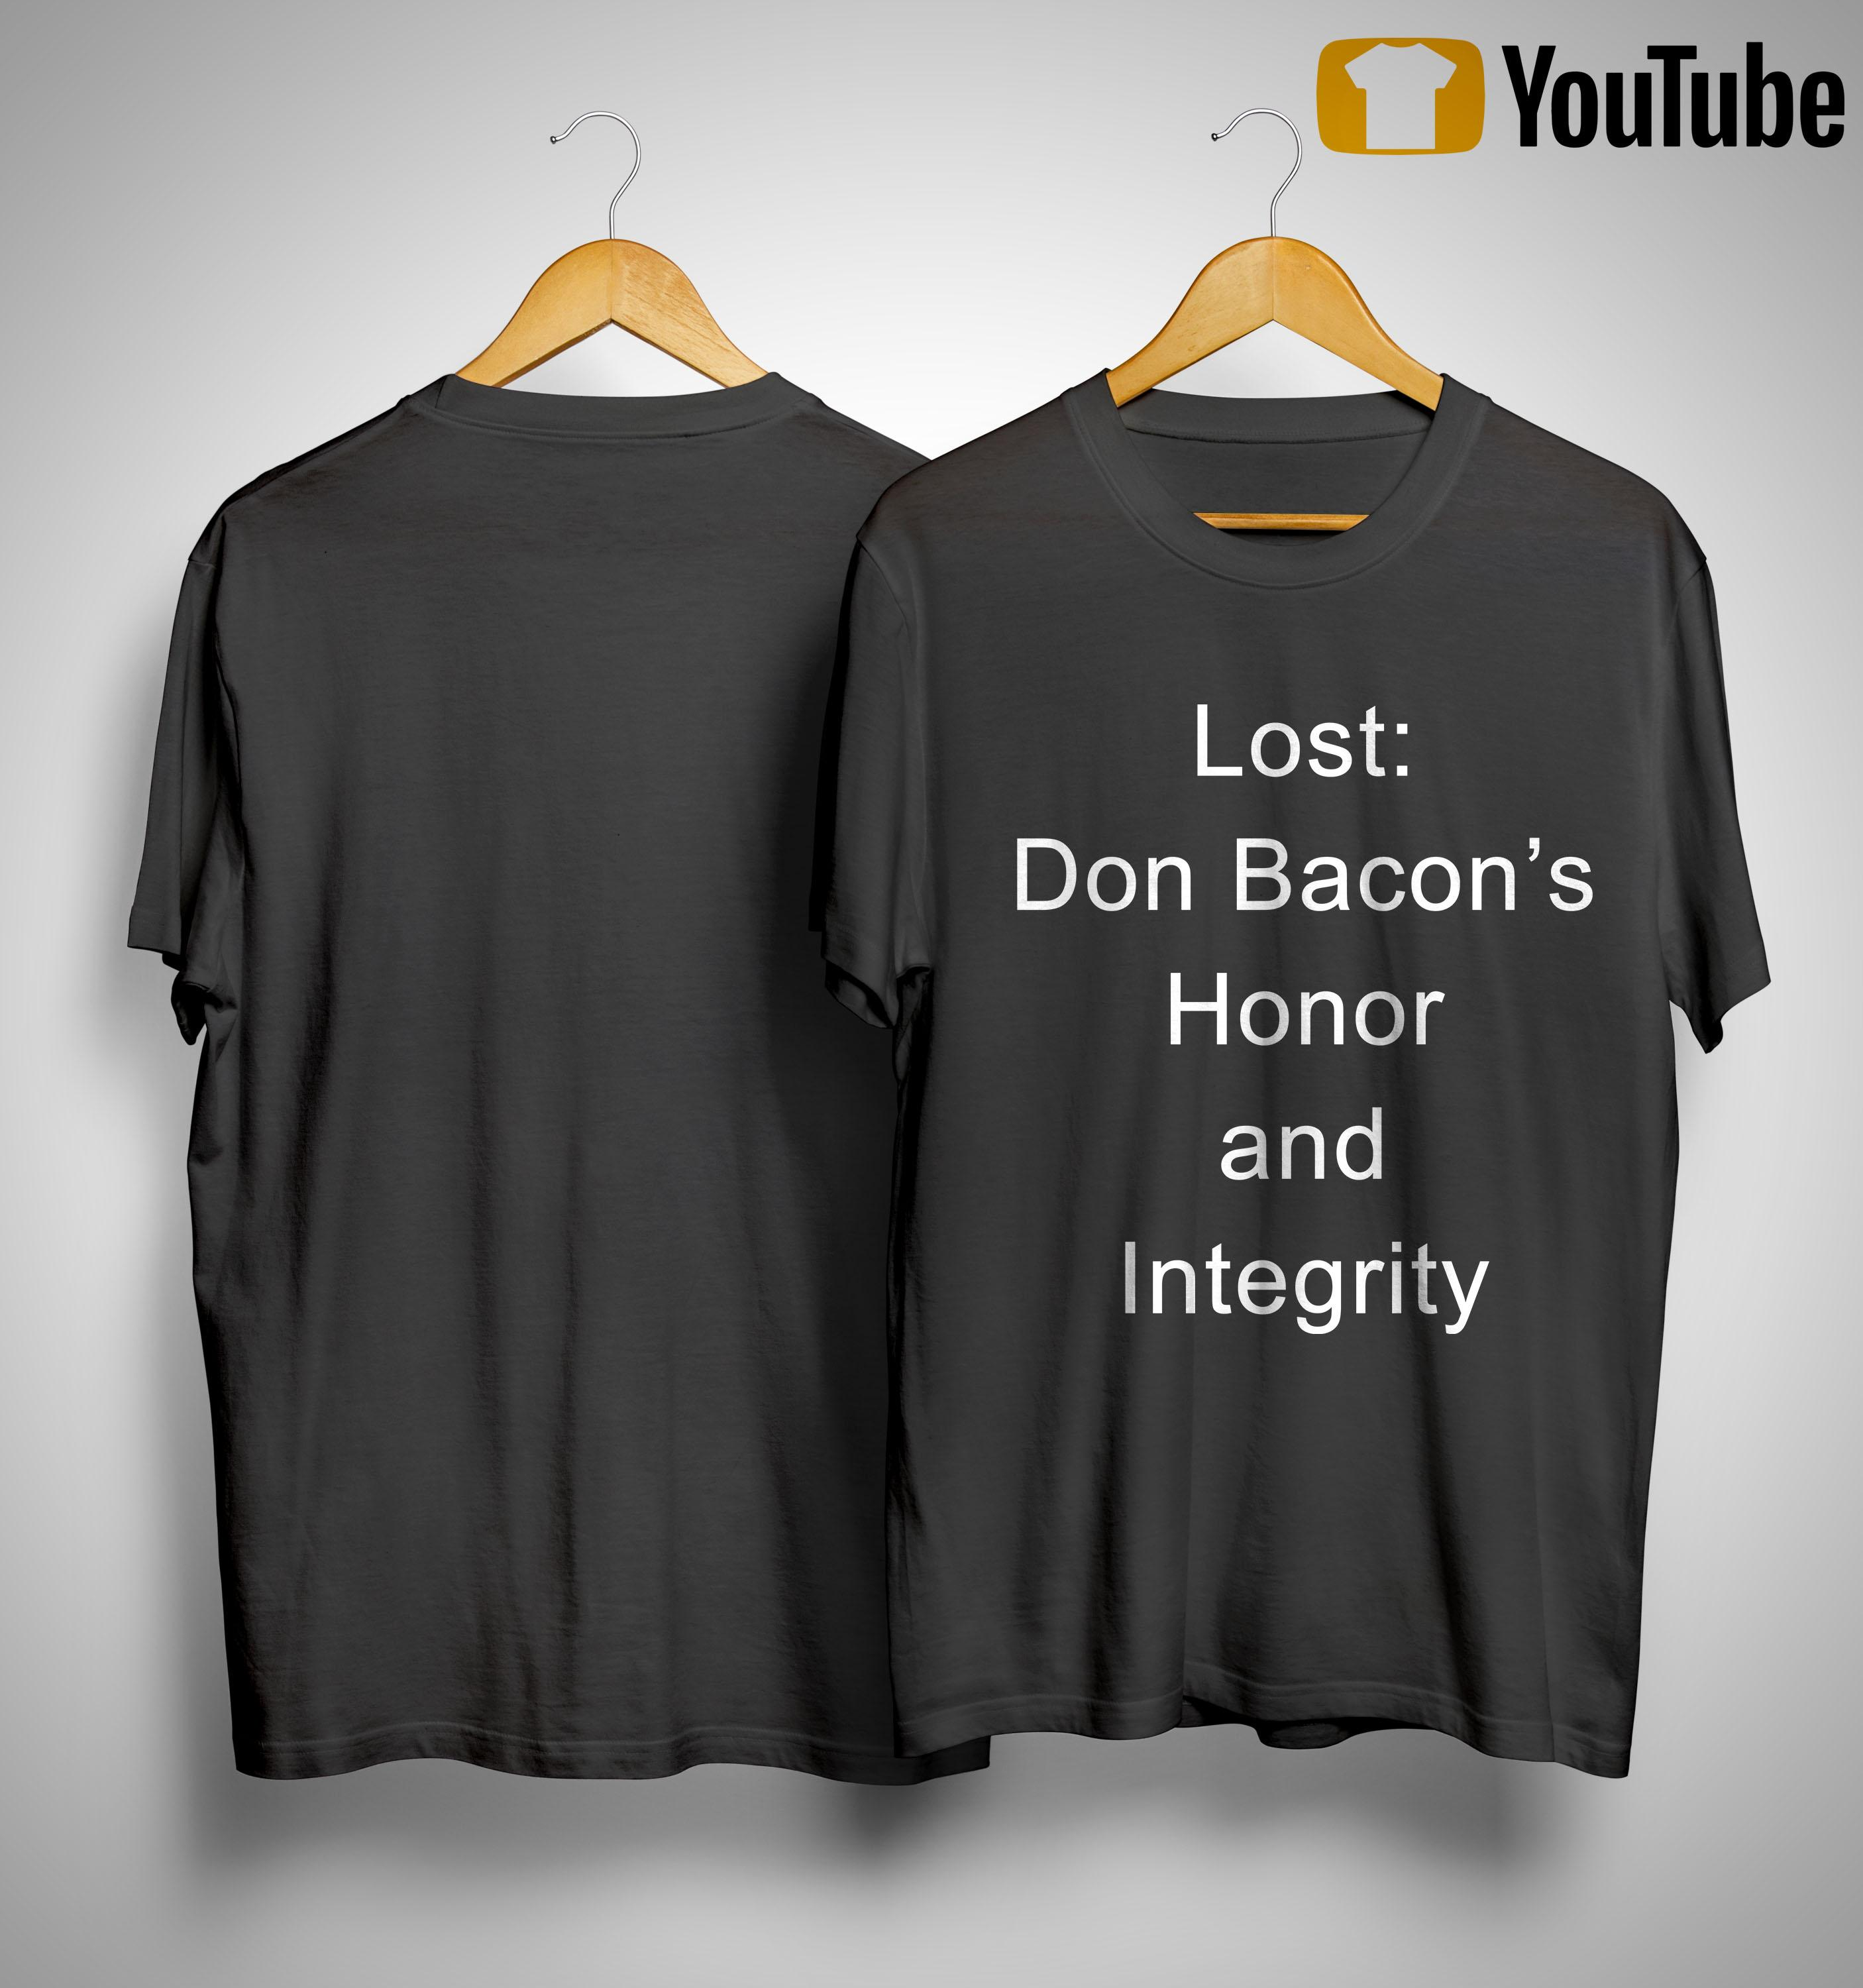 Lost Don Bacon's Honor And Integrity Shirt